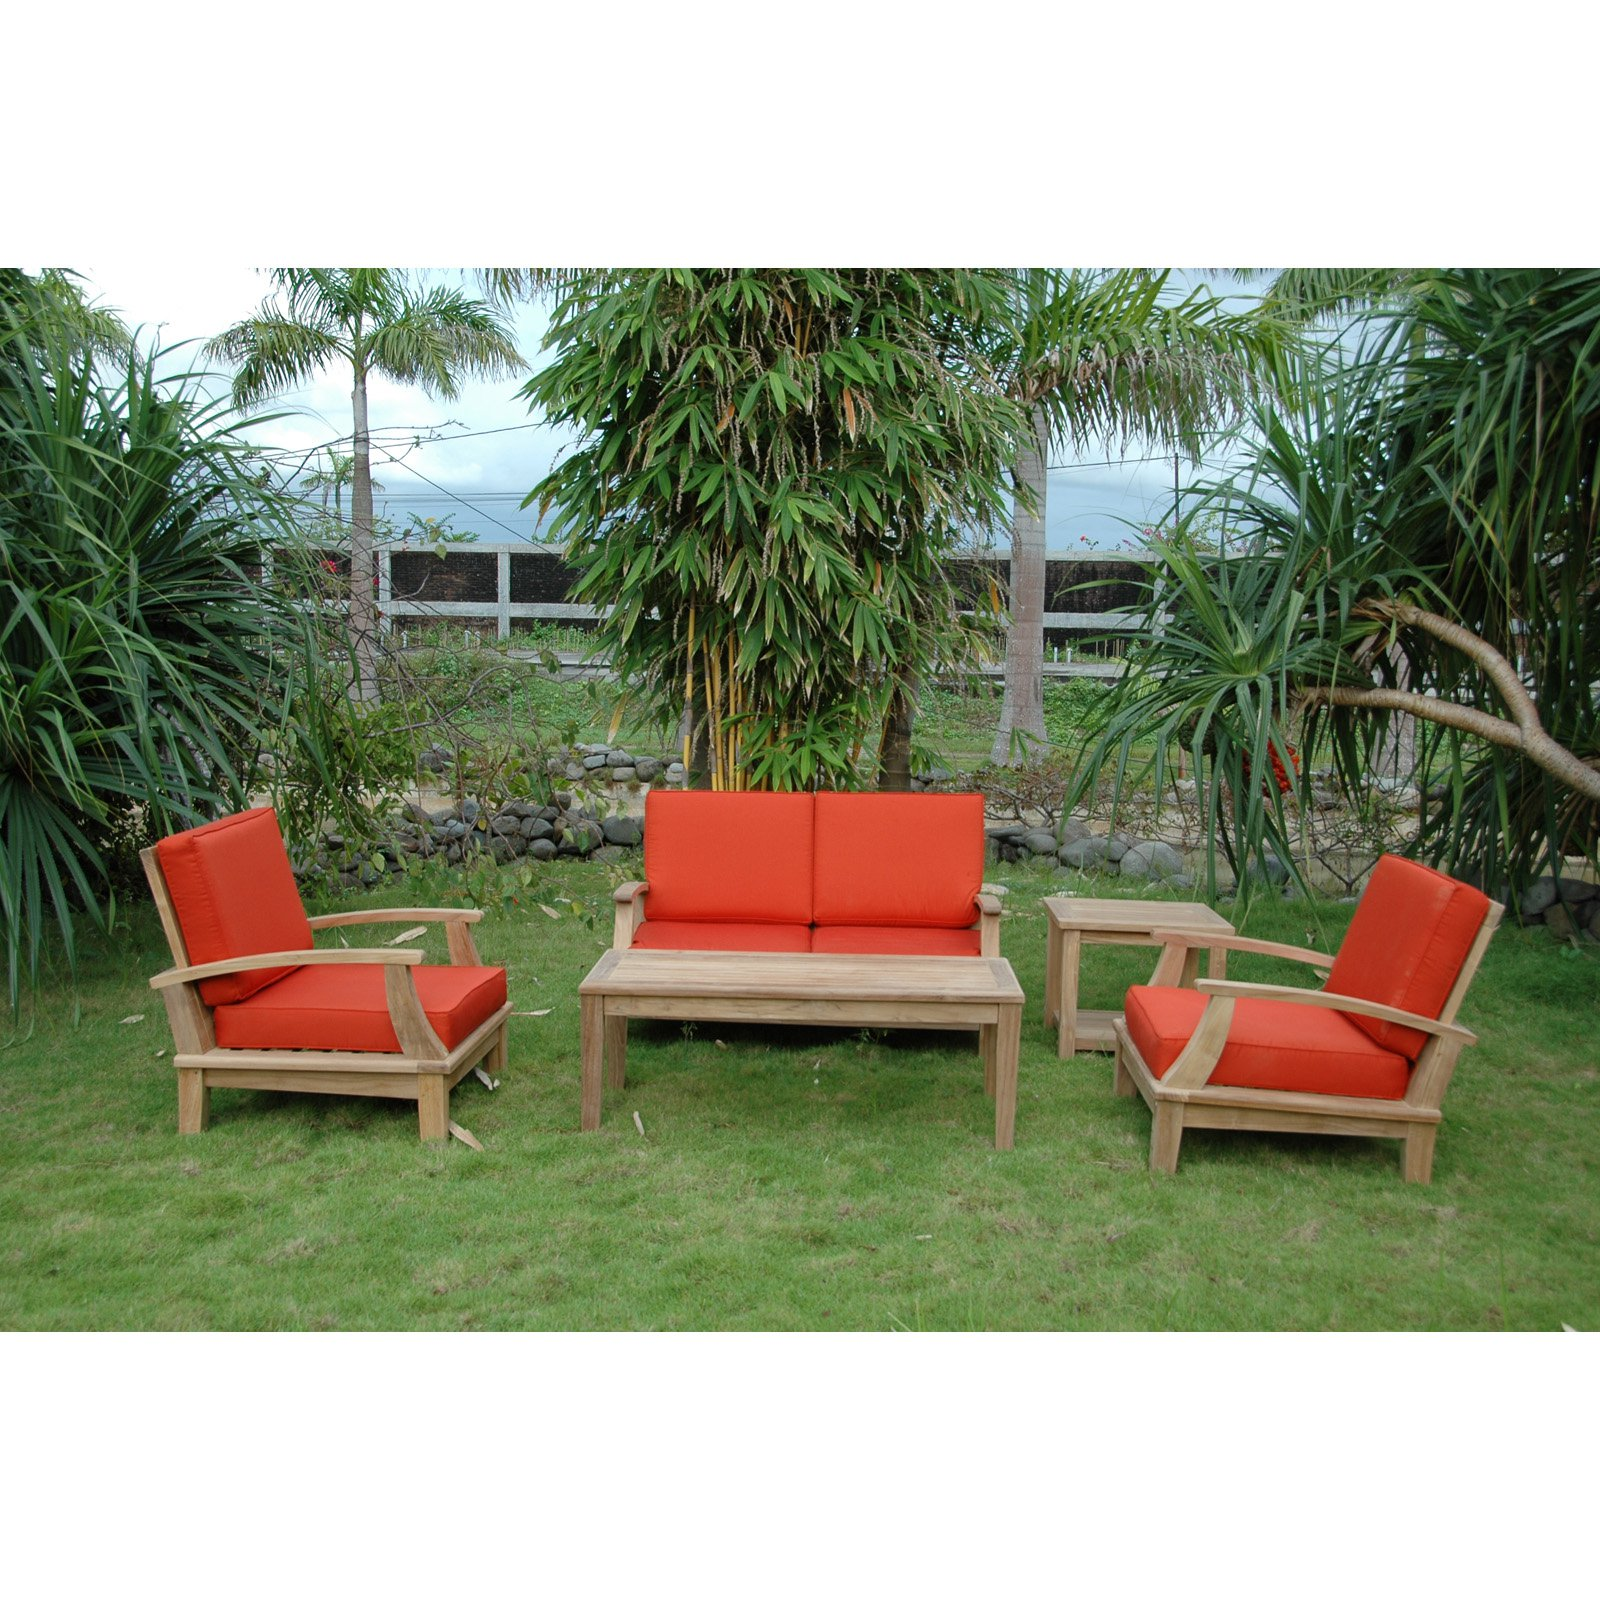 Anderson Teak Brianna Wooden 5 Piece Loveseat Patio Conversation Set